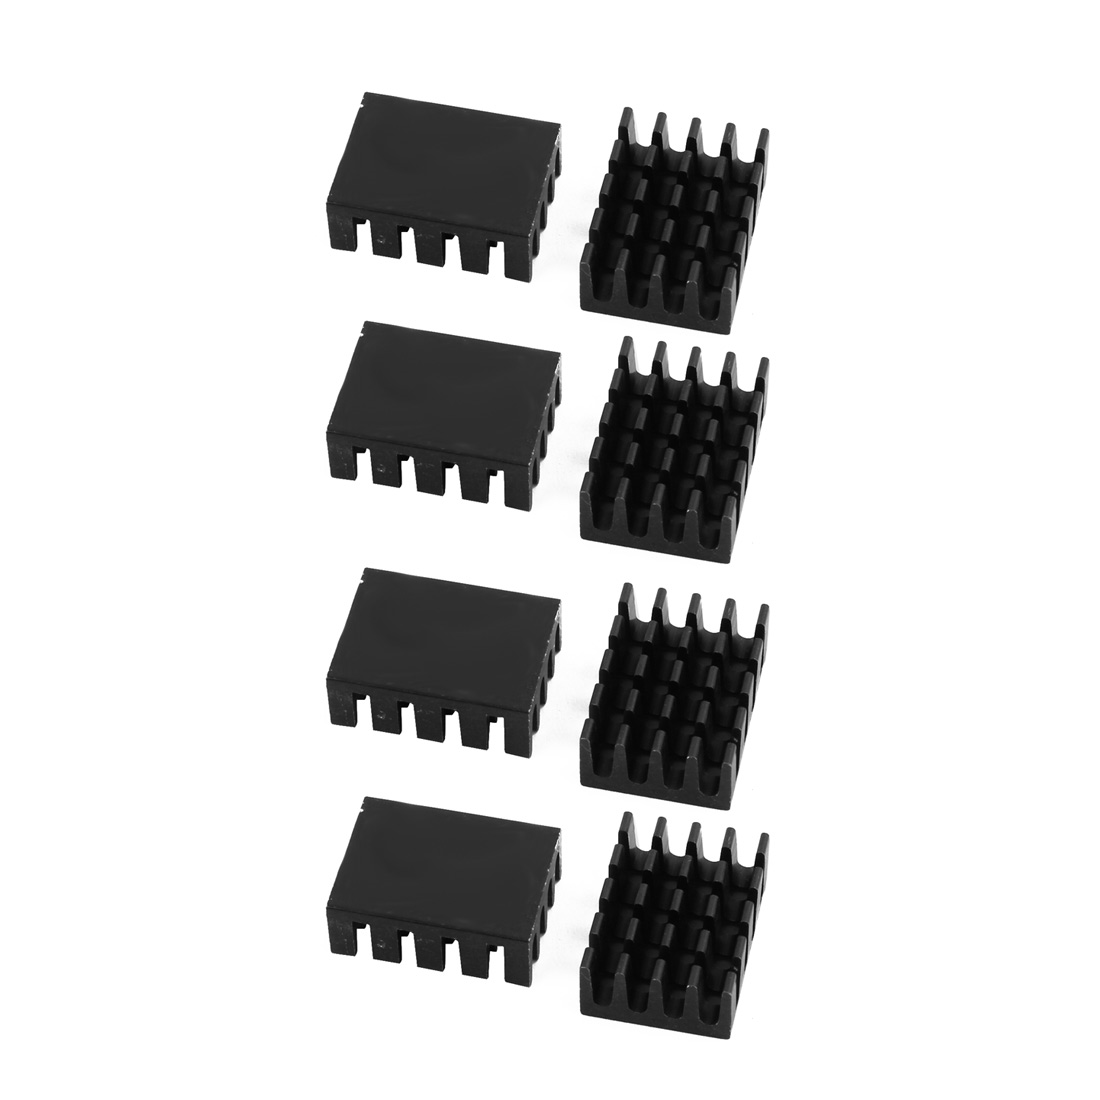 8Pcs 20mm x 14mm x 7mm Aluminum Heatsink Heat Diffuse Cooling Fin Black